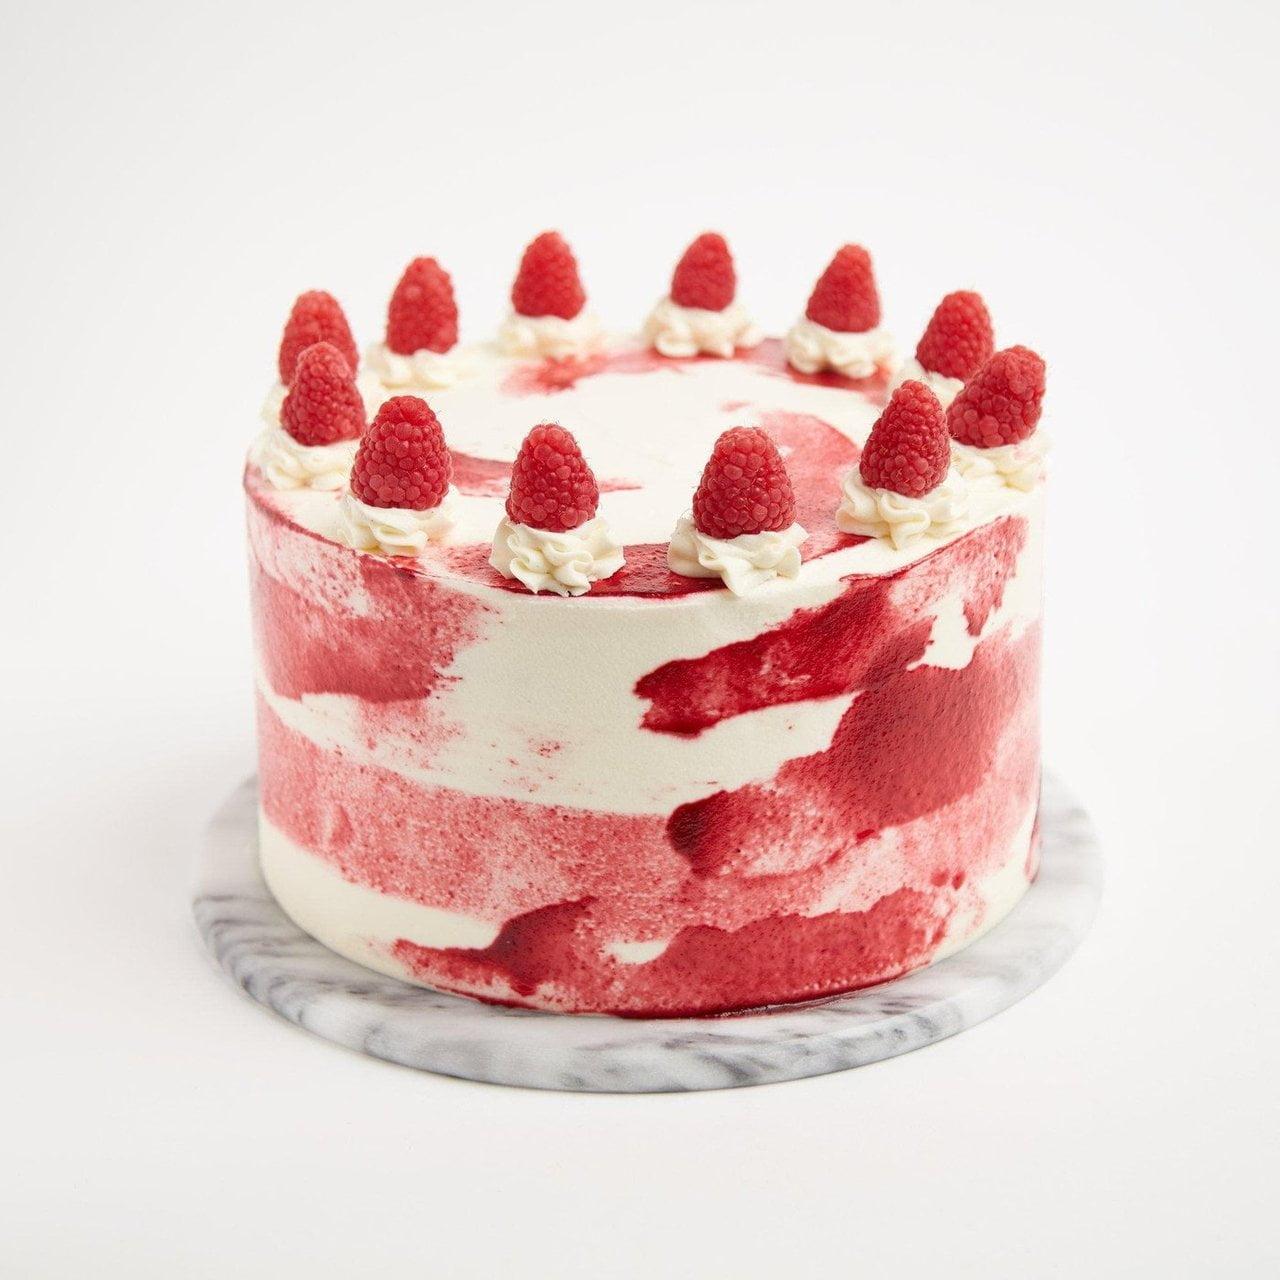 Raspberry Ripple Cake by Crumbs & Doilies